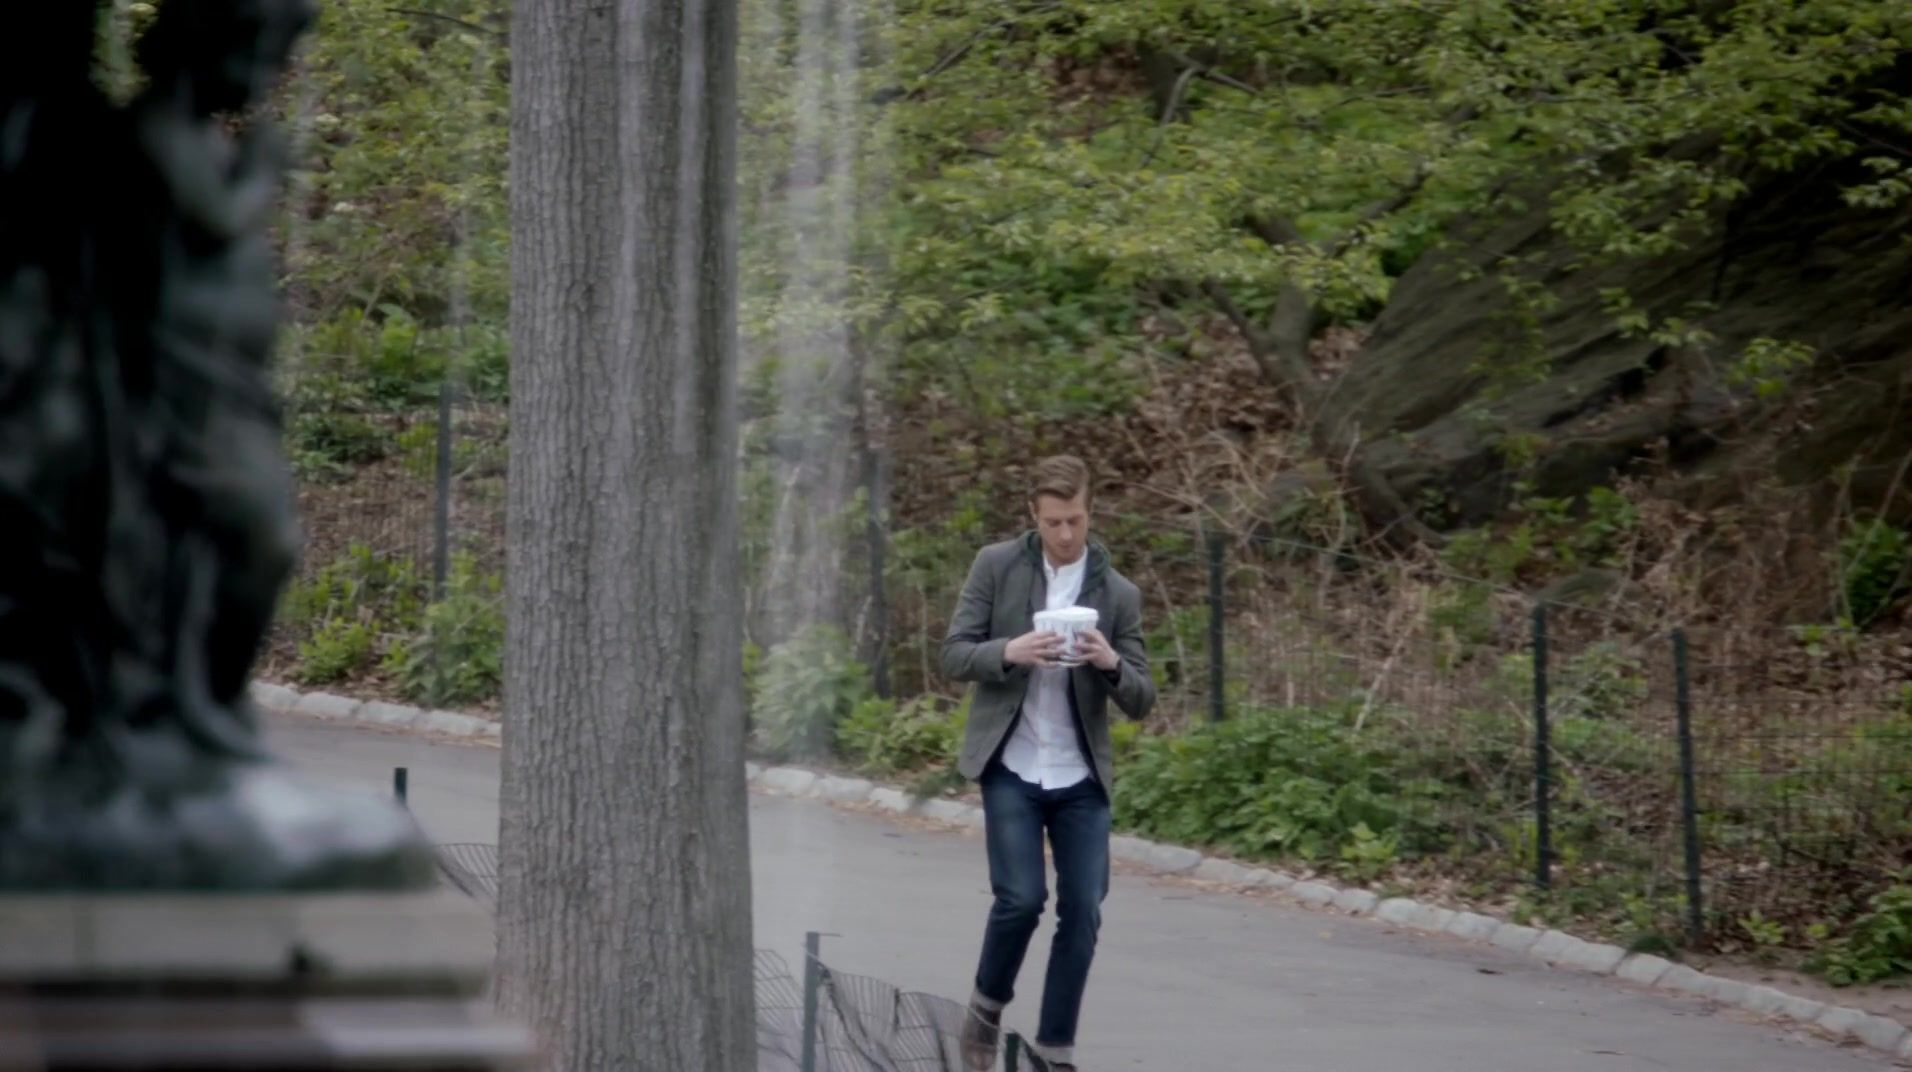 The Angels Take Manhattan The Doctor's heart-breaking farewell to Amy and Rory - a race against time through the streets of Manhattan, as New York's statues come to life…